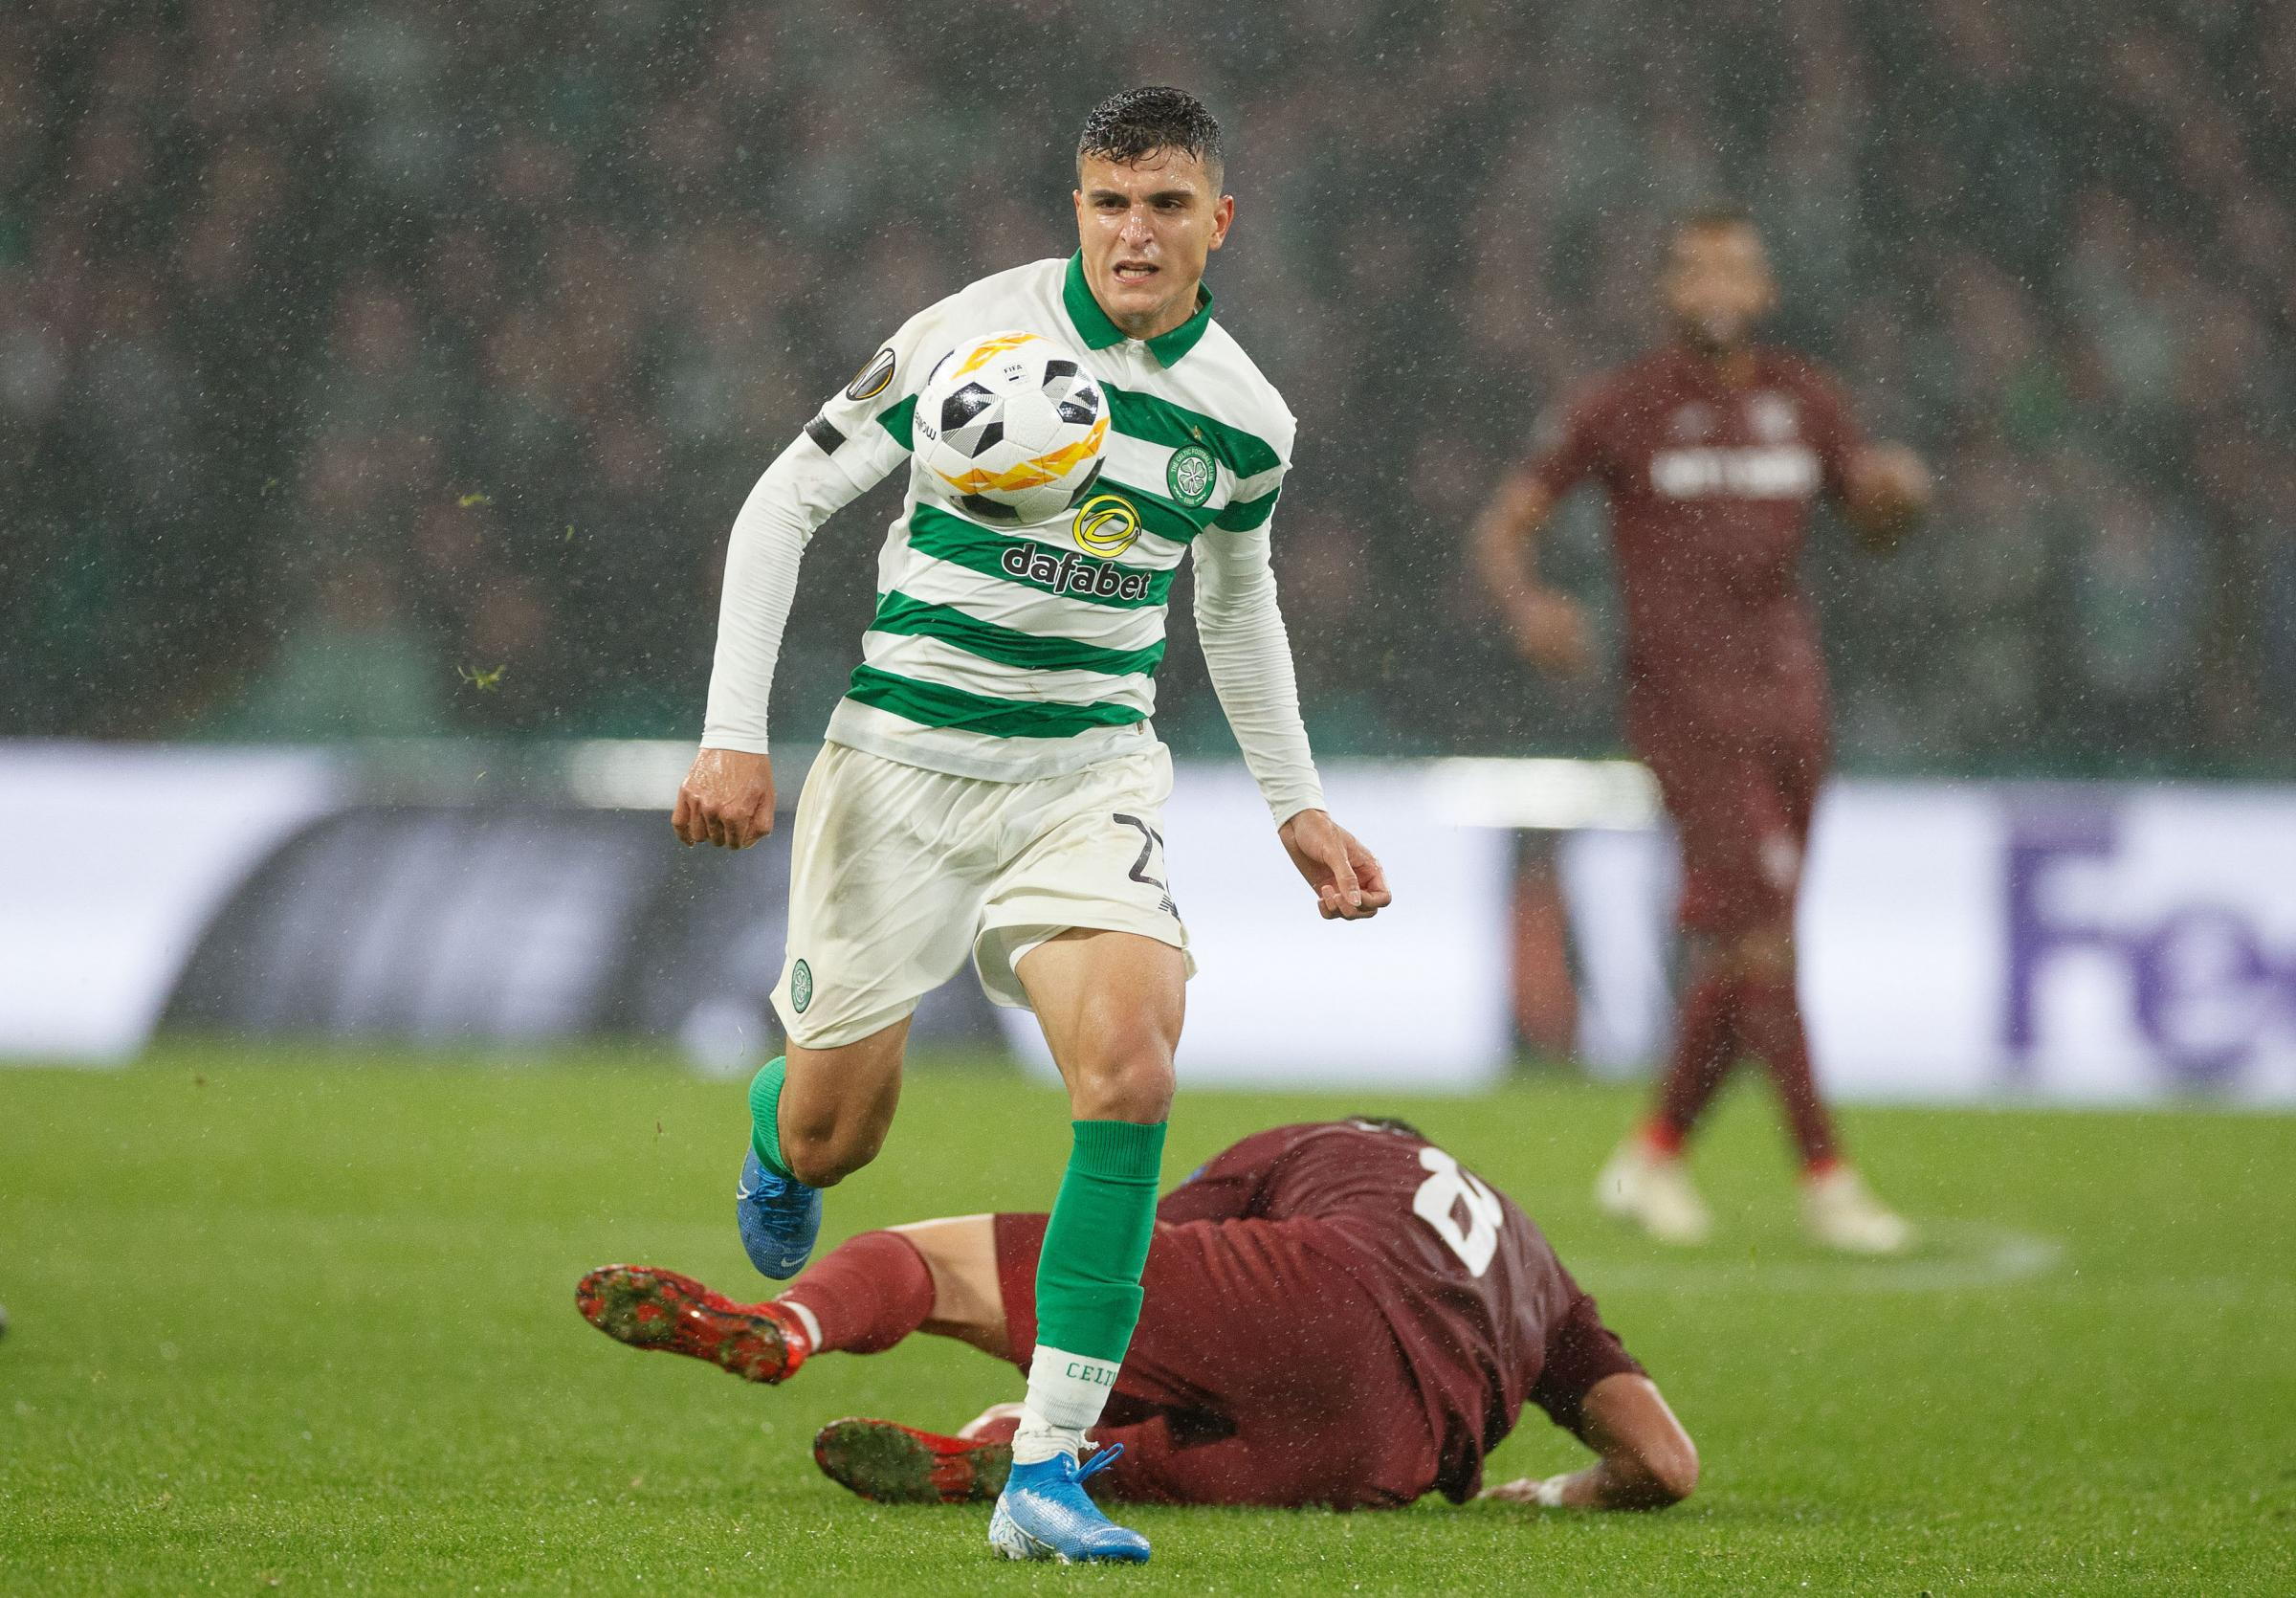 Mark Bowen discusses Southampton's Mohamed Elyounoussi